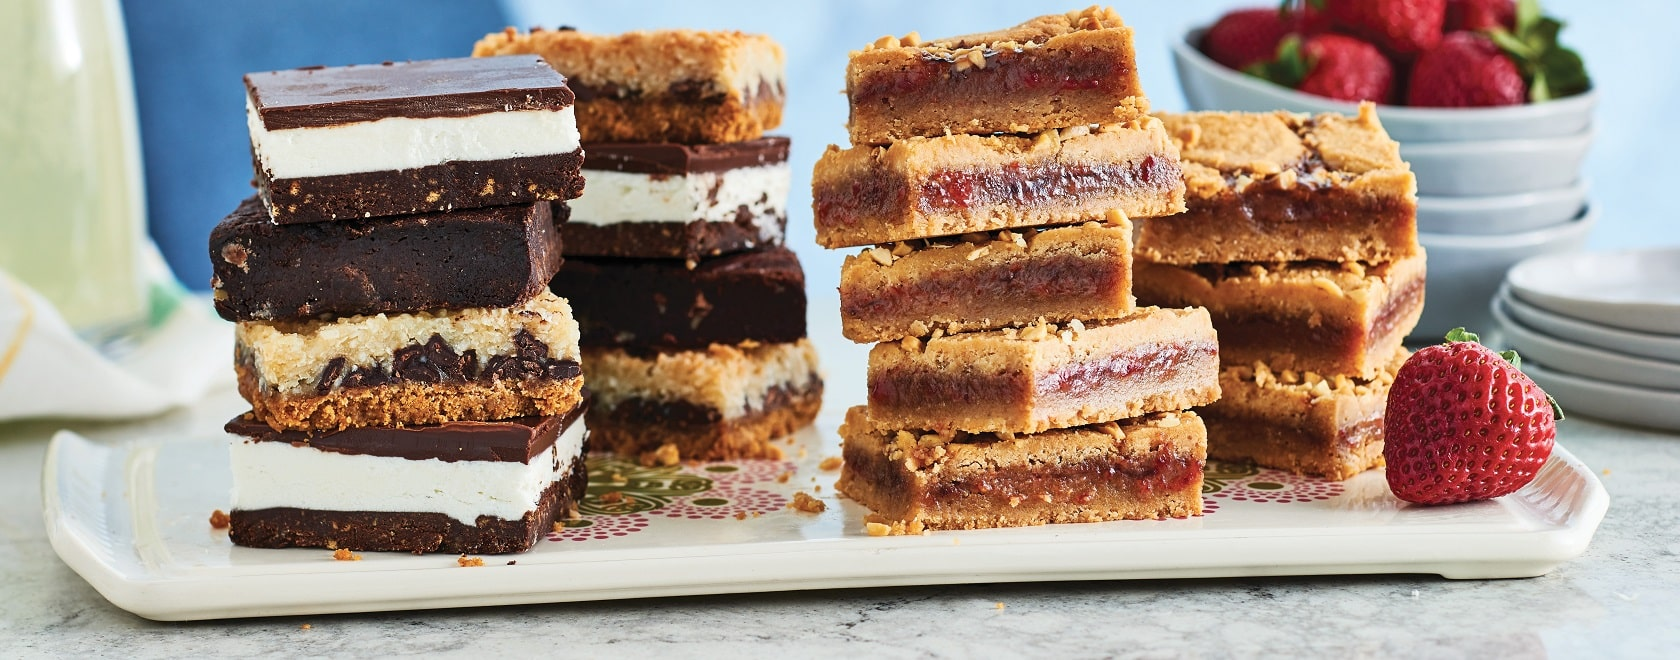 A group of vegan gluten-free dessert bars